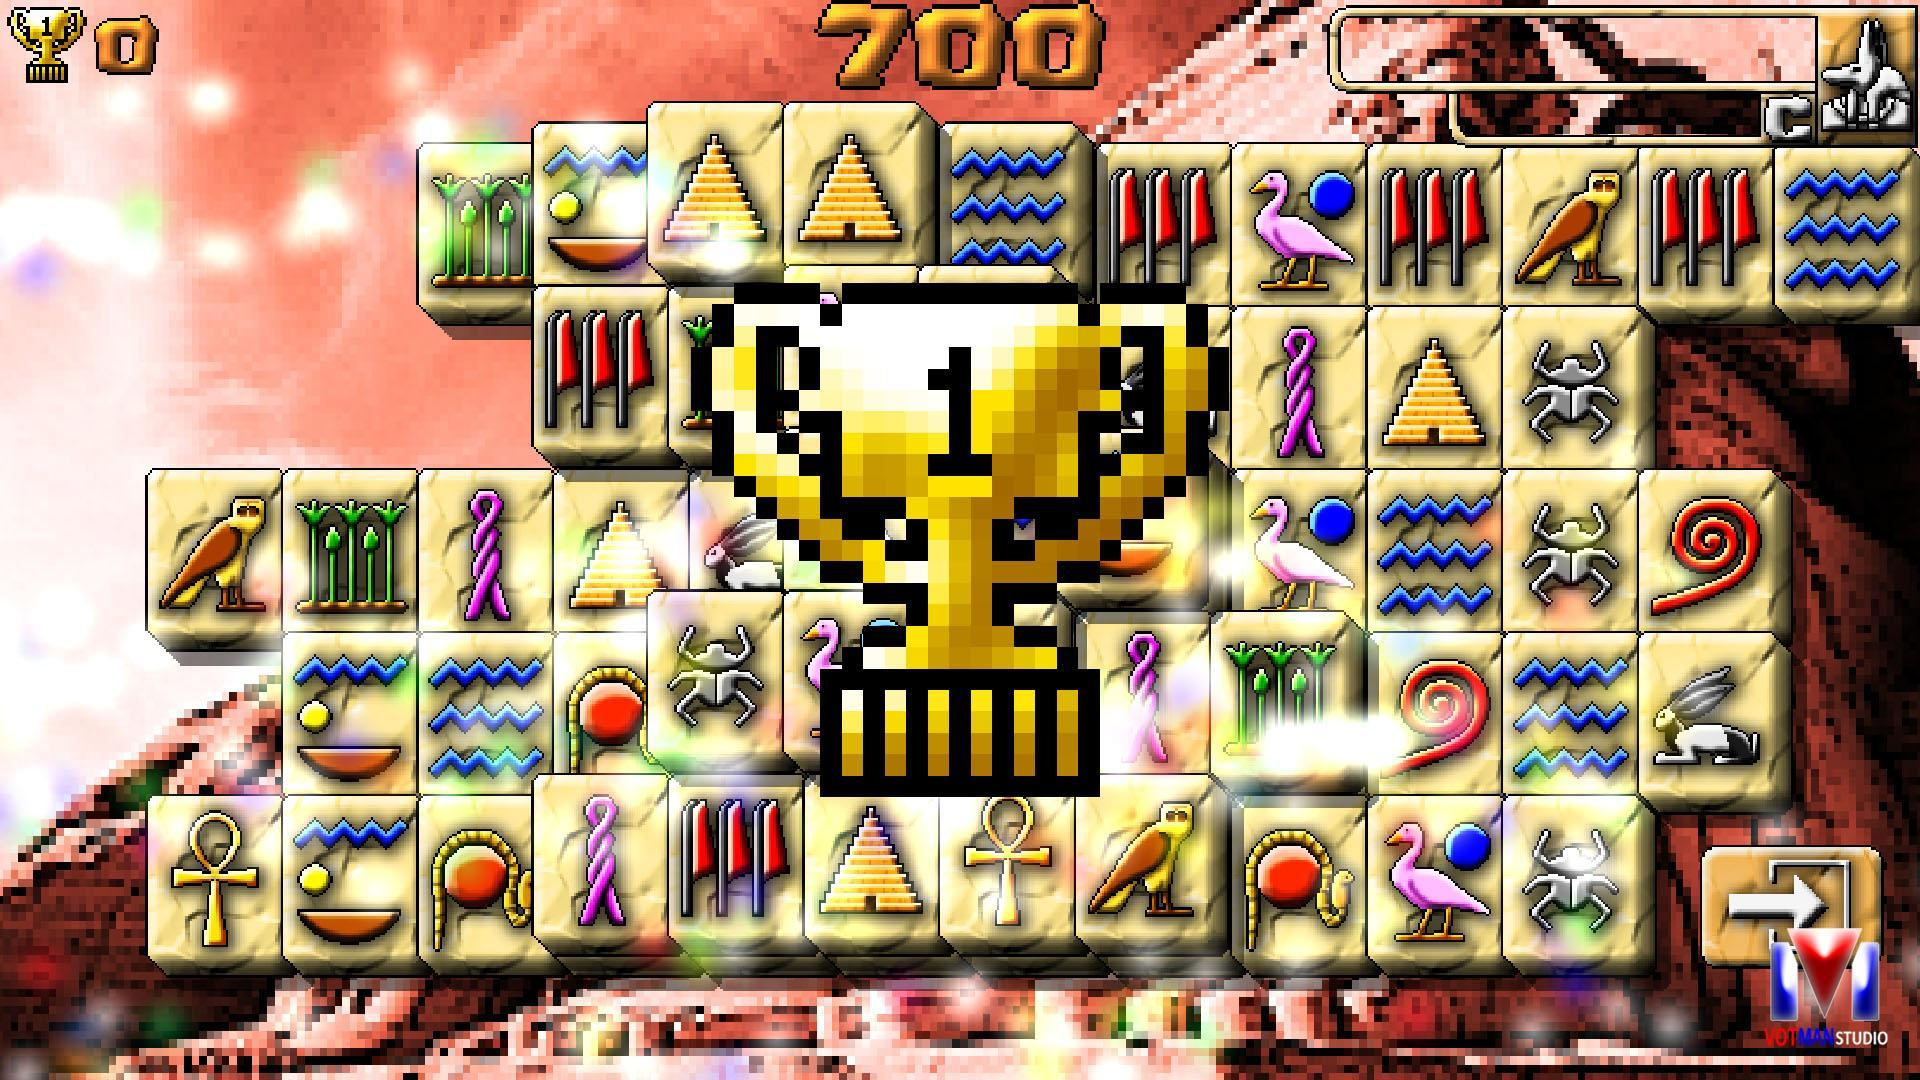 Shanghai Plus: Free Mahjong Egyptian Solitaire for Android - APK